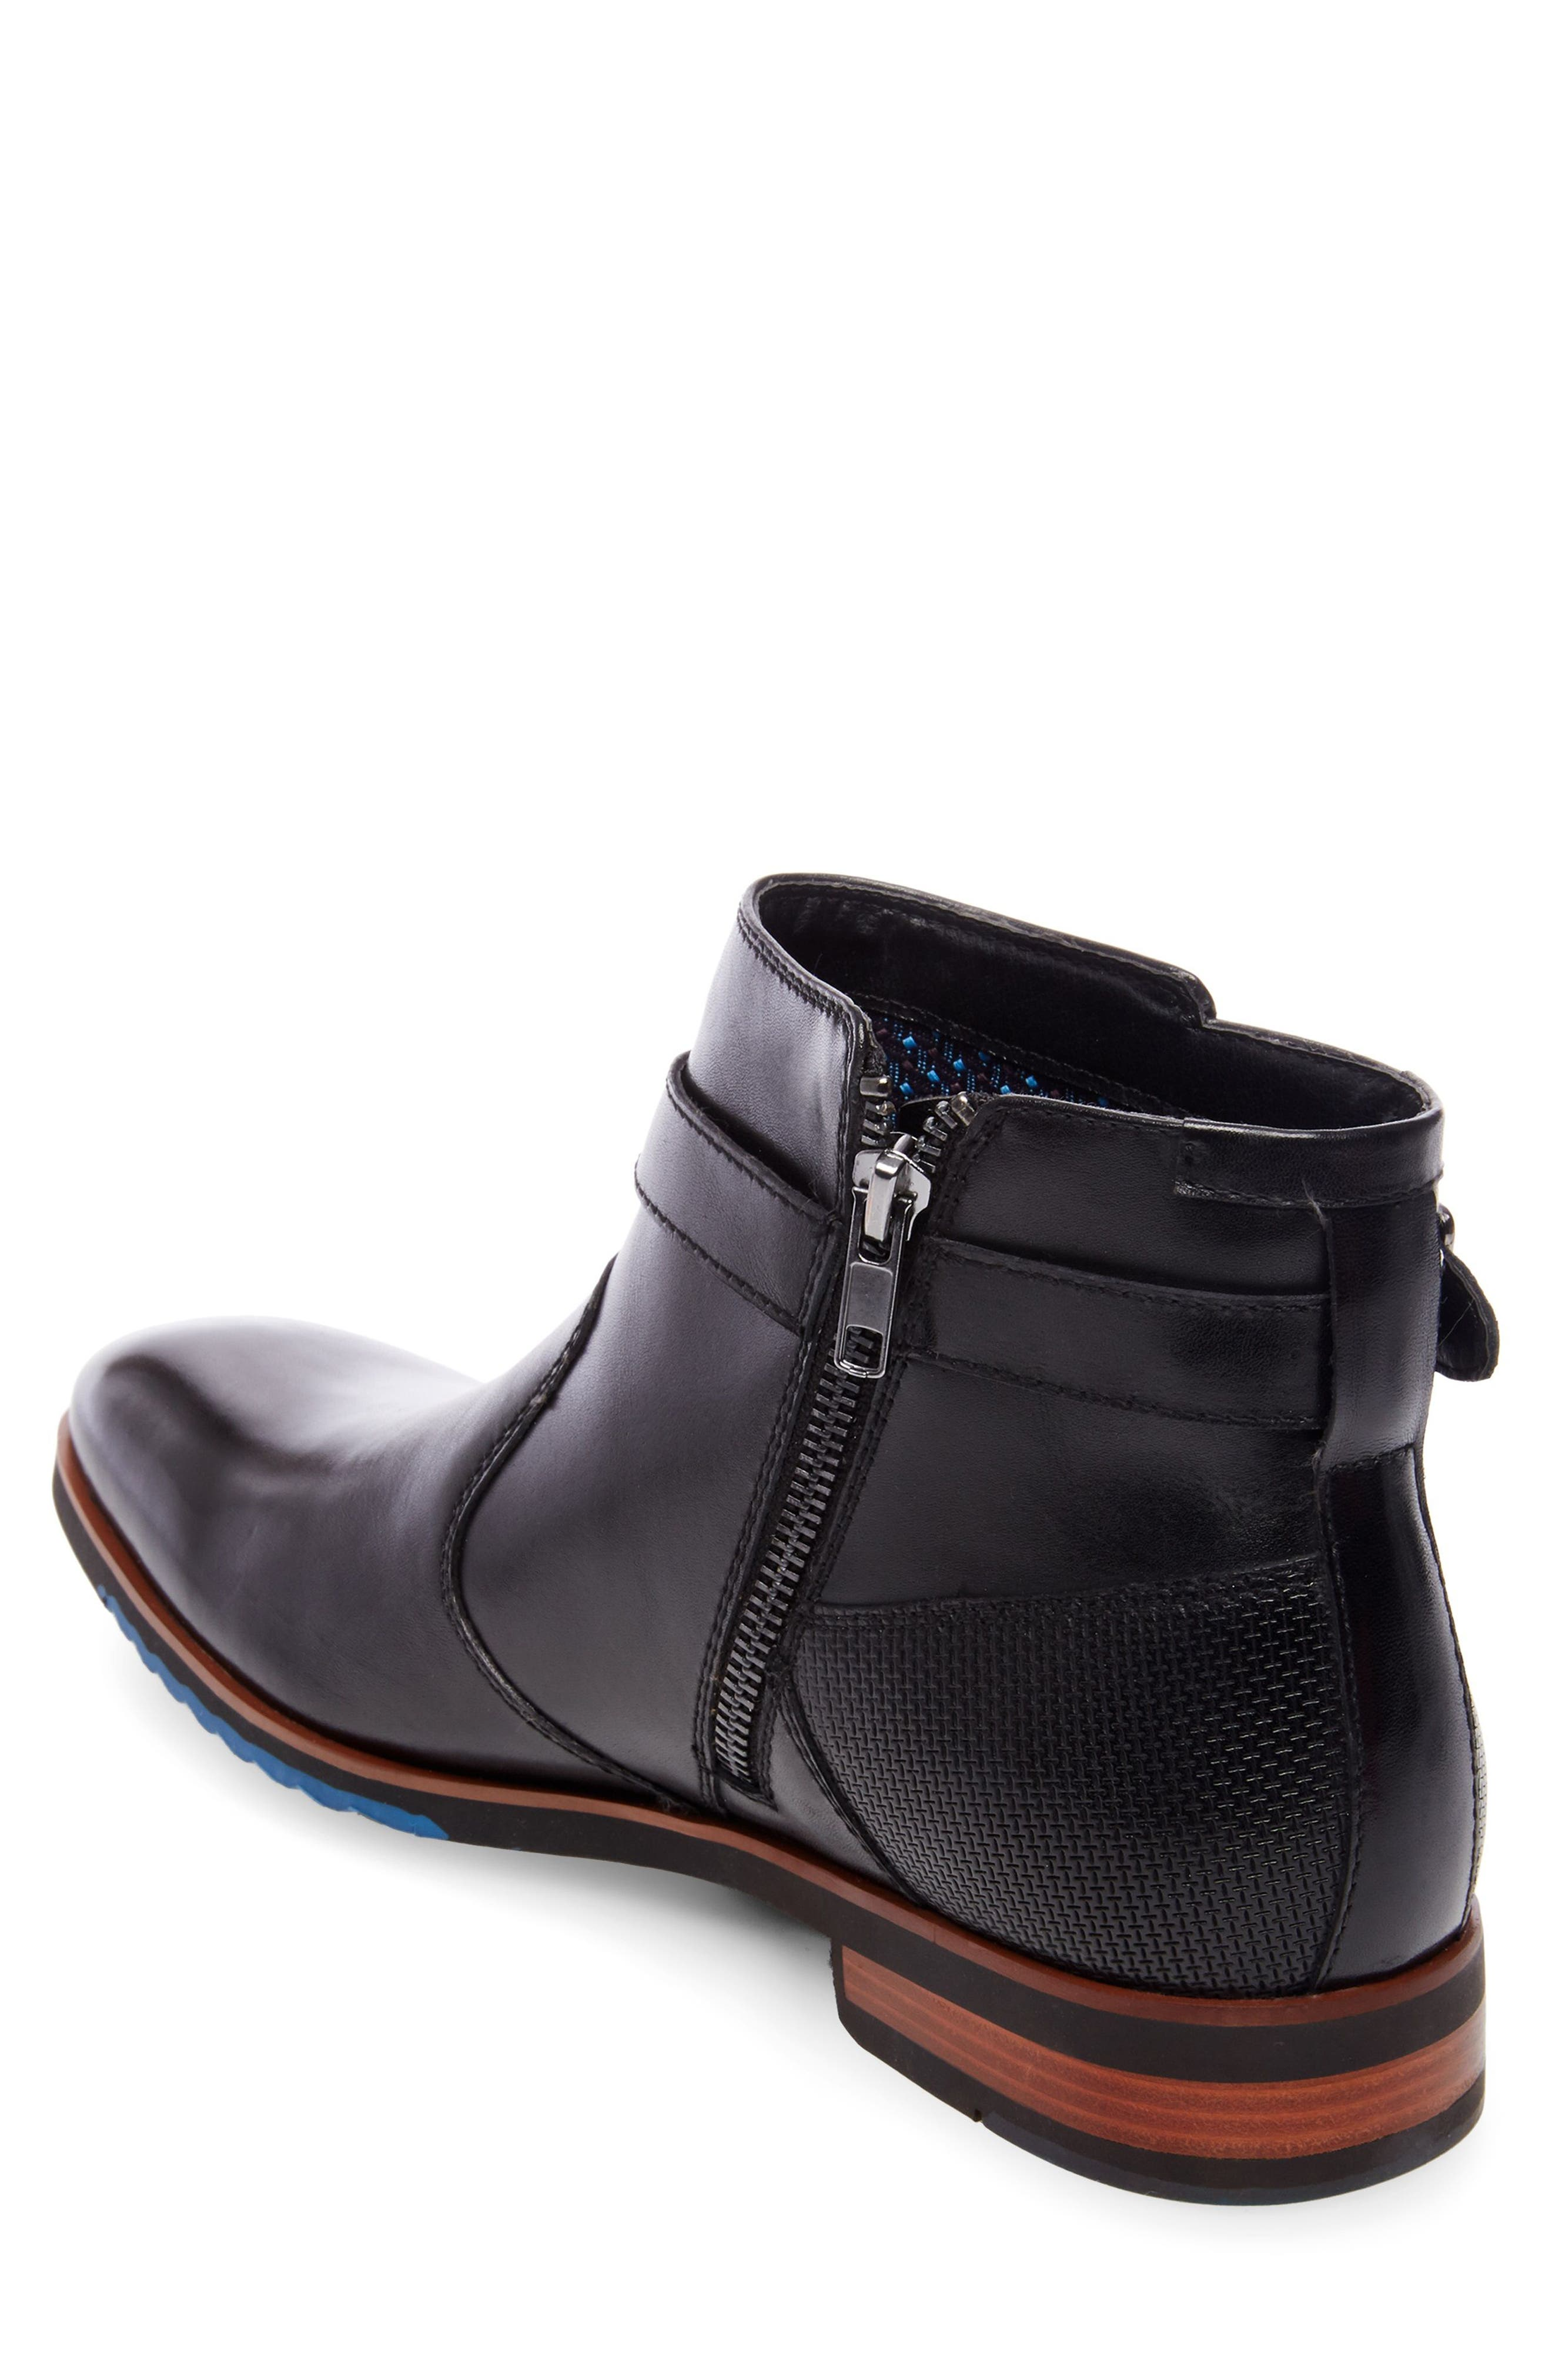 Levant Boot,                             Alternate thumbnail 2, color,                             Black Leather